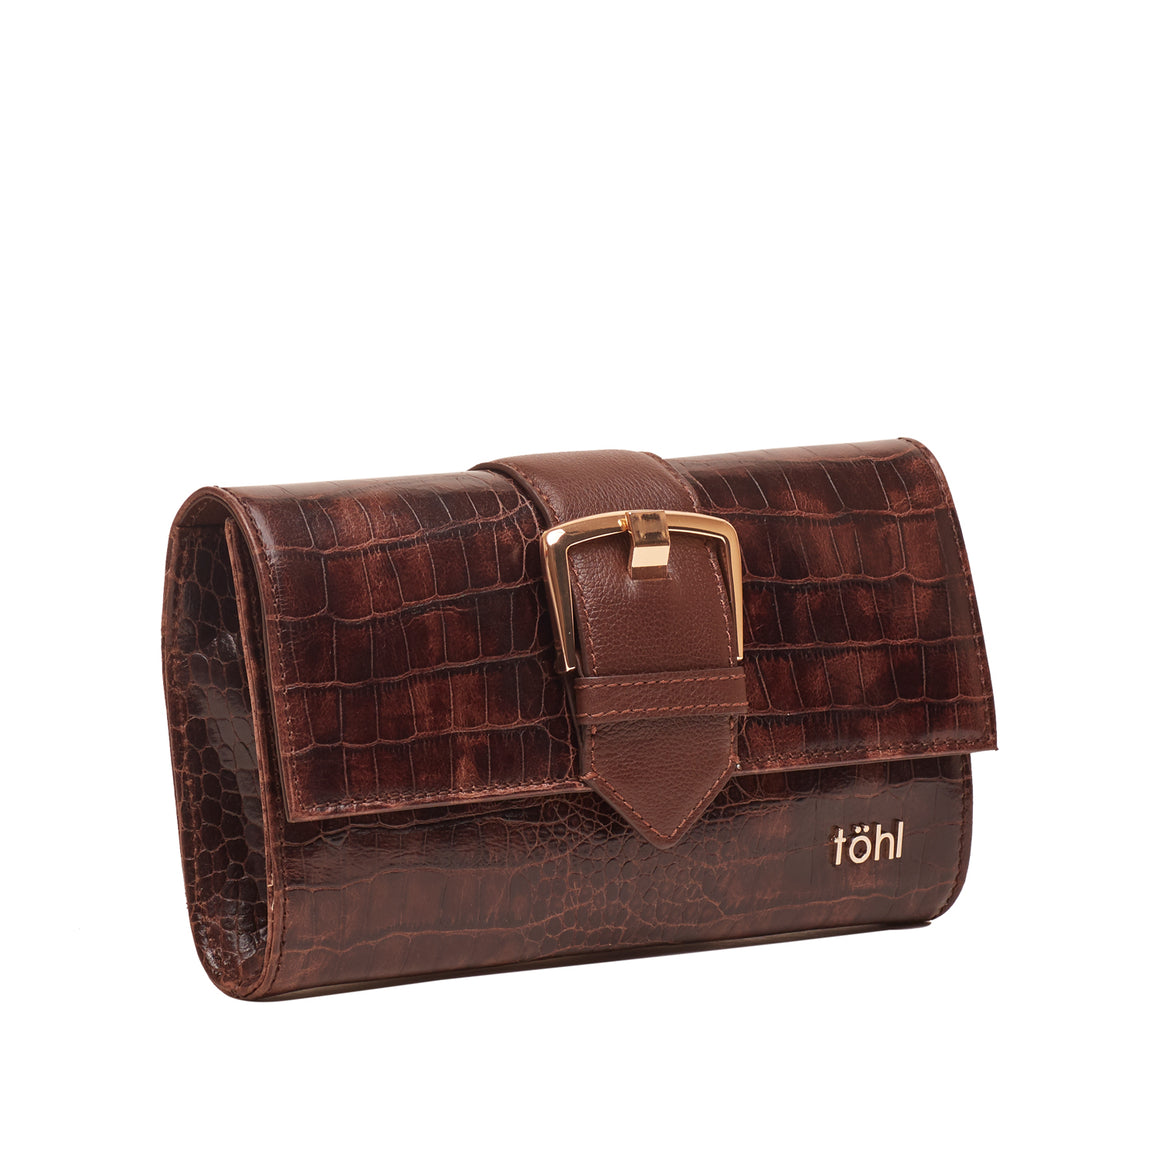 CH 0009 - TOHL TIPPI WOMEN'S CLUTCH - CROCODILLO KAHVE